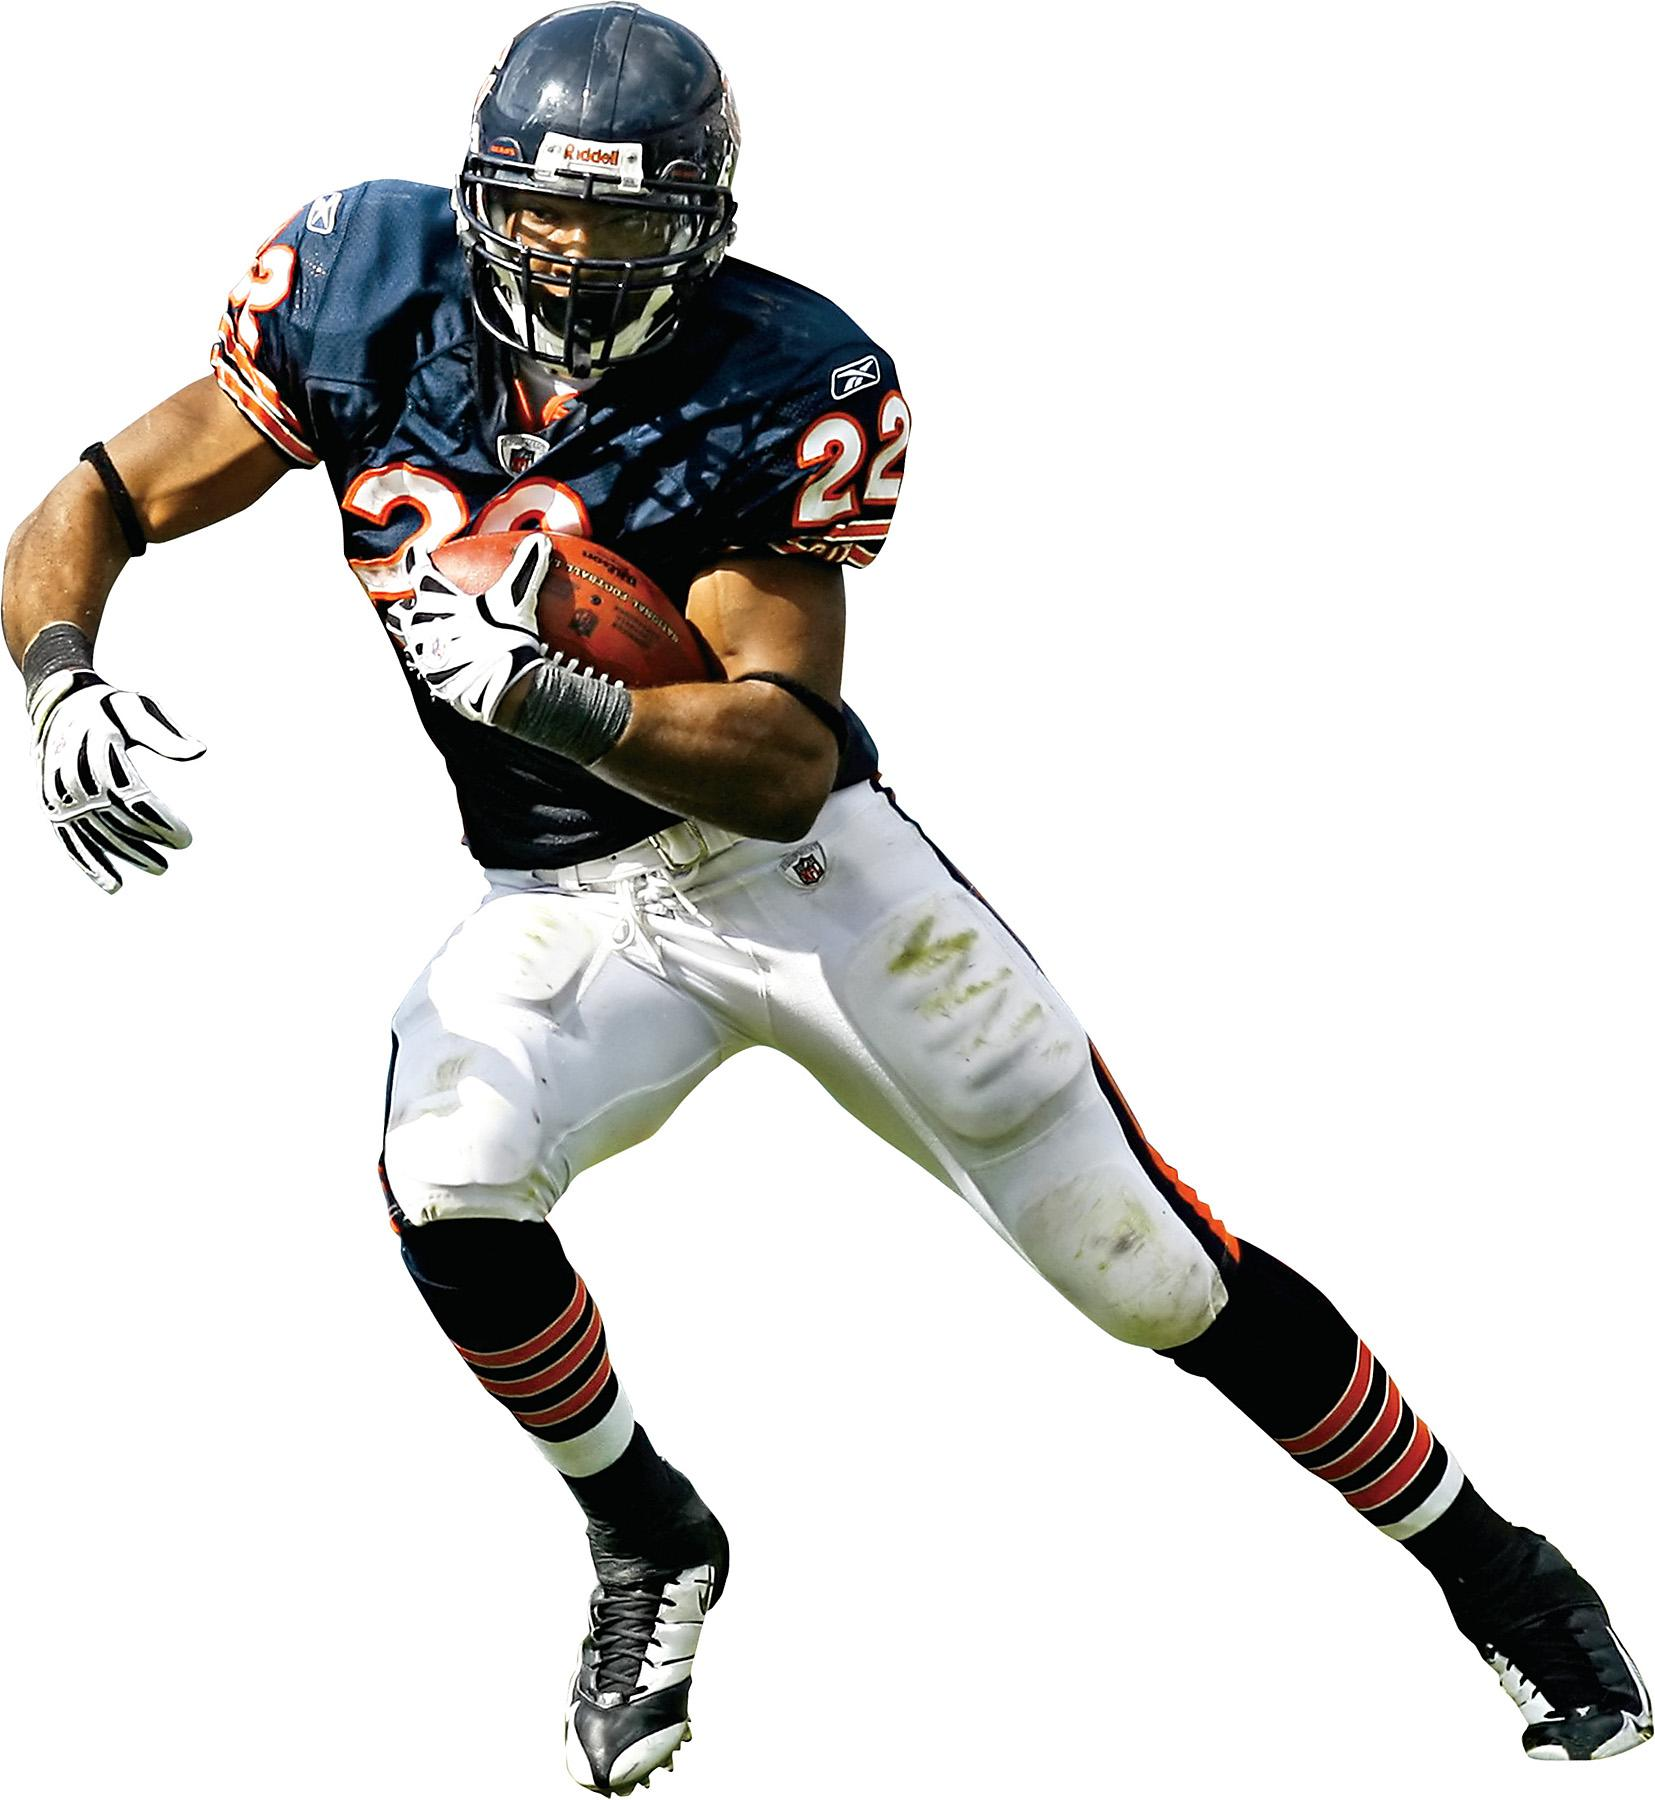 do all nfl players use steroids